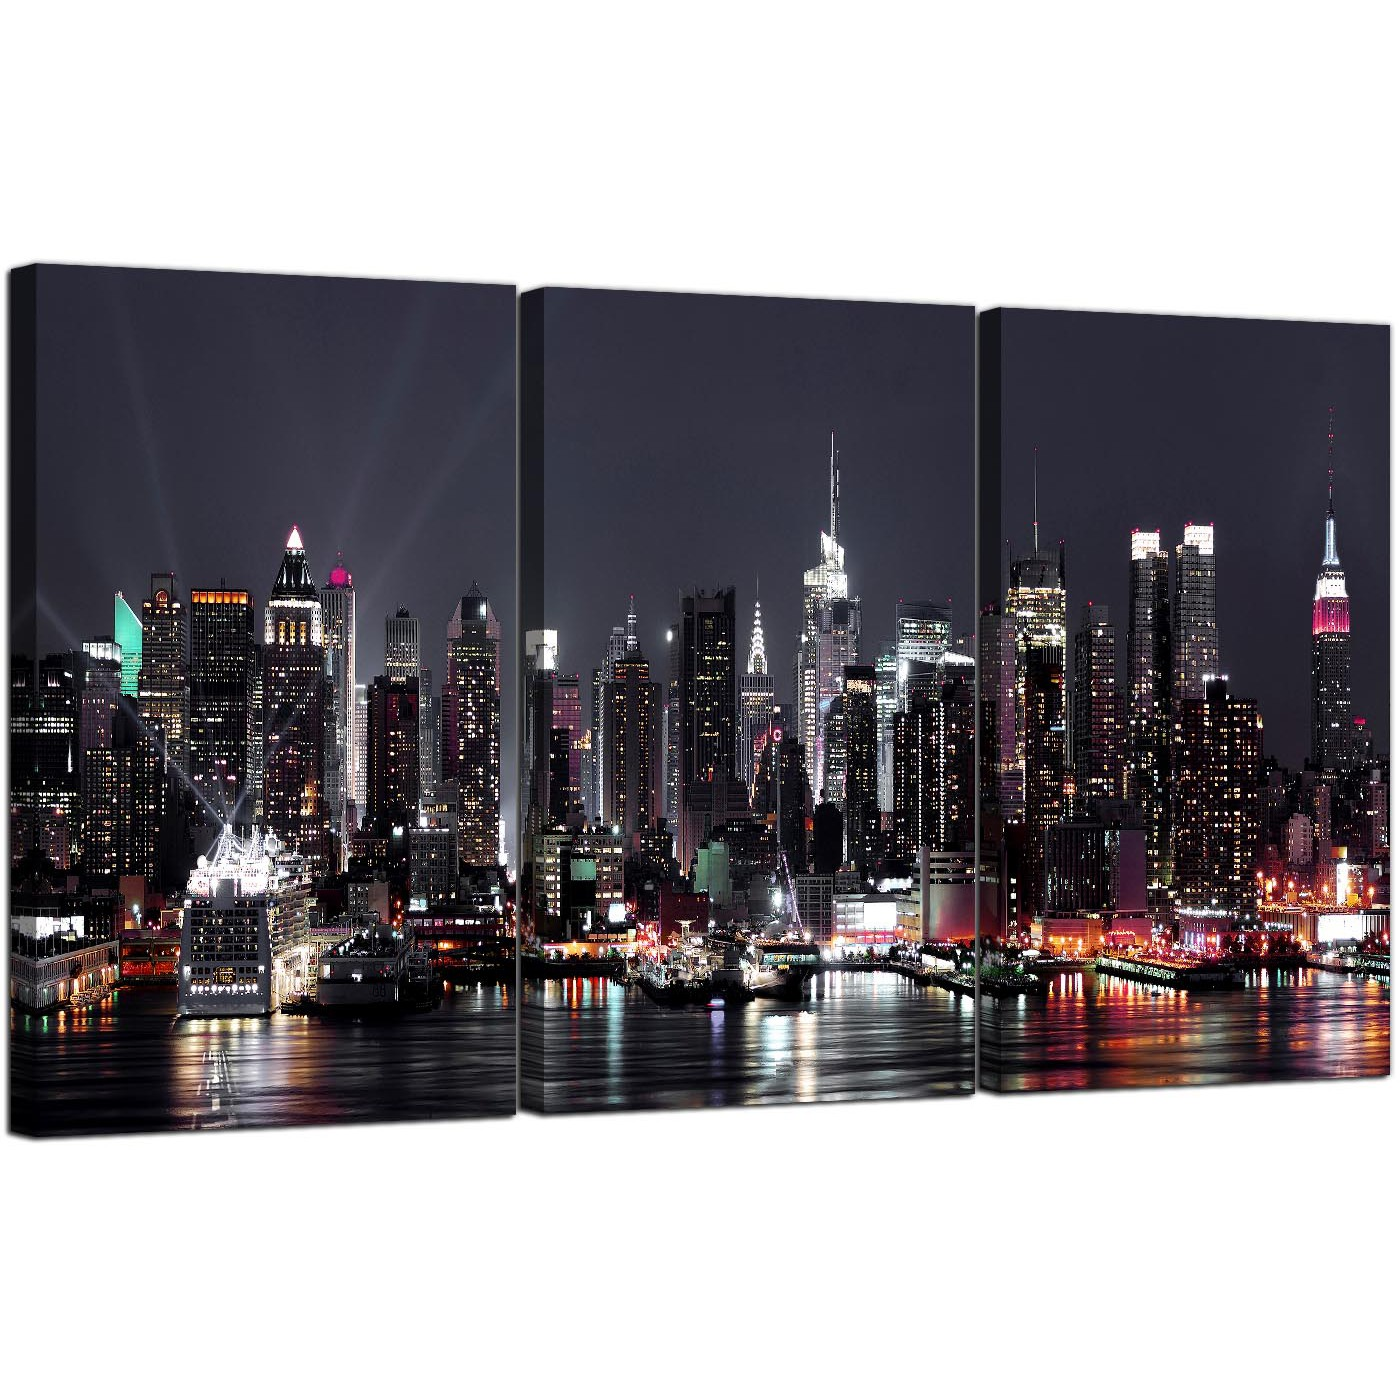 High Lights Of New York Skyline Canvas Wall Art: Large New York Skyline Canvas Pictures Set Of 3 For Your